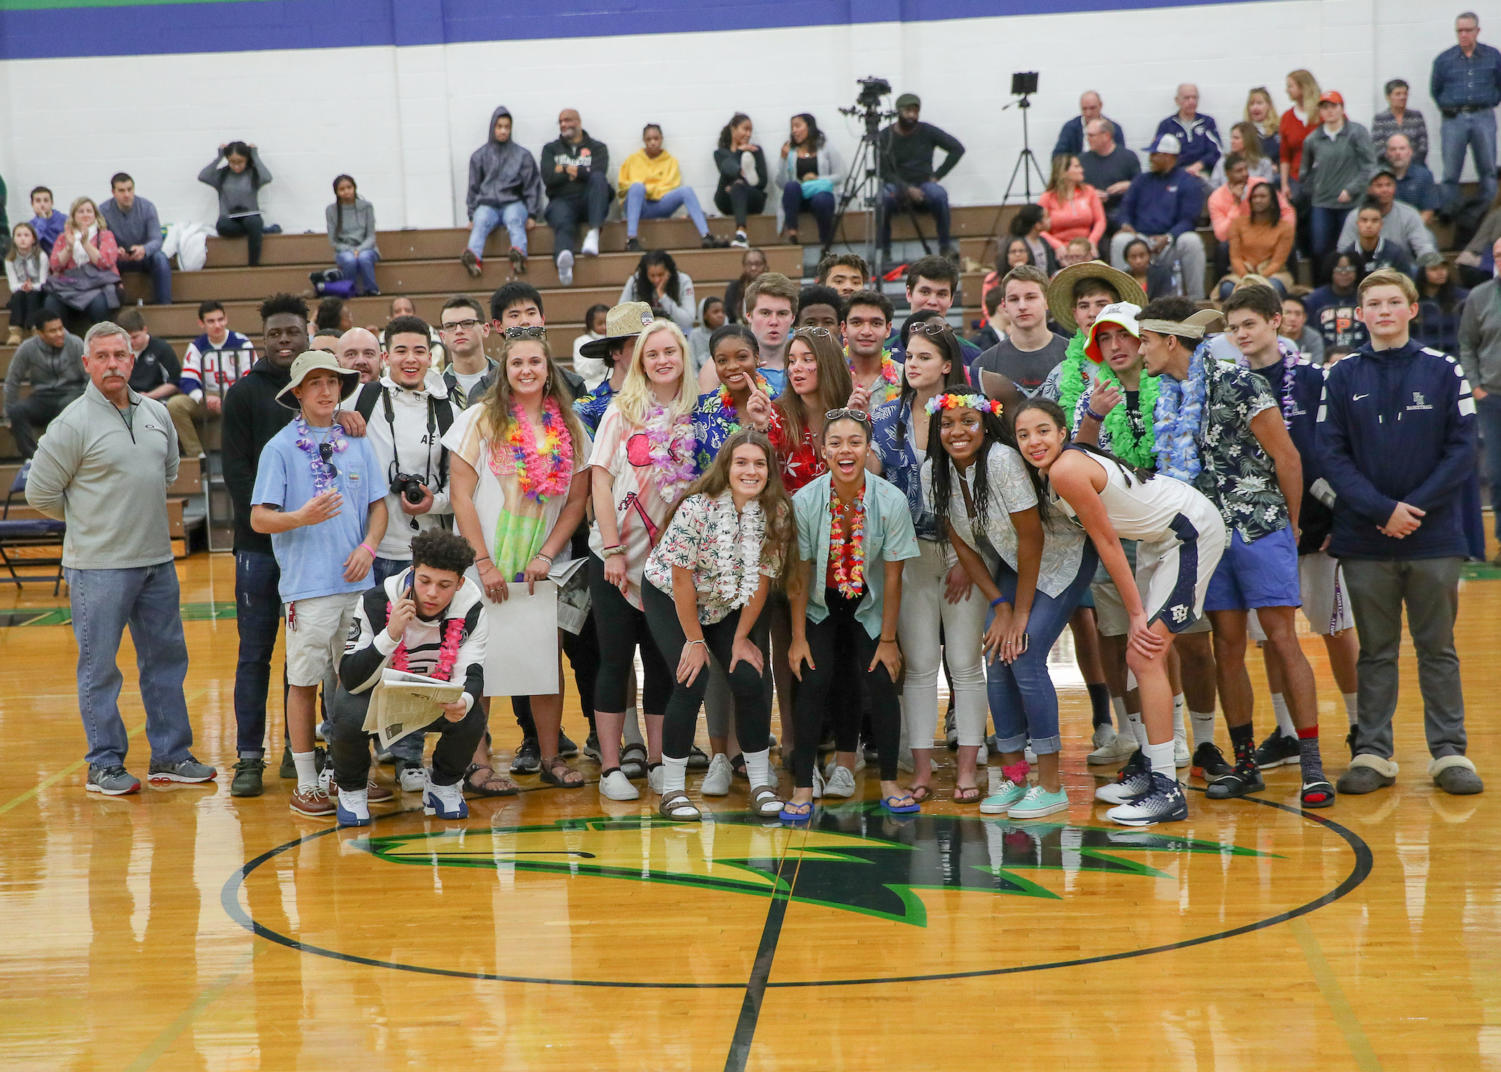 Students who attended the Winterfest games pose in the middle of the gym.